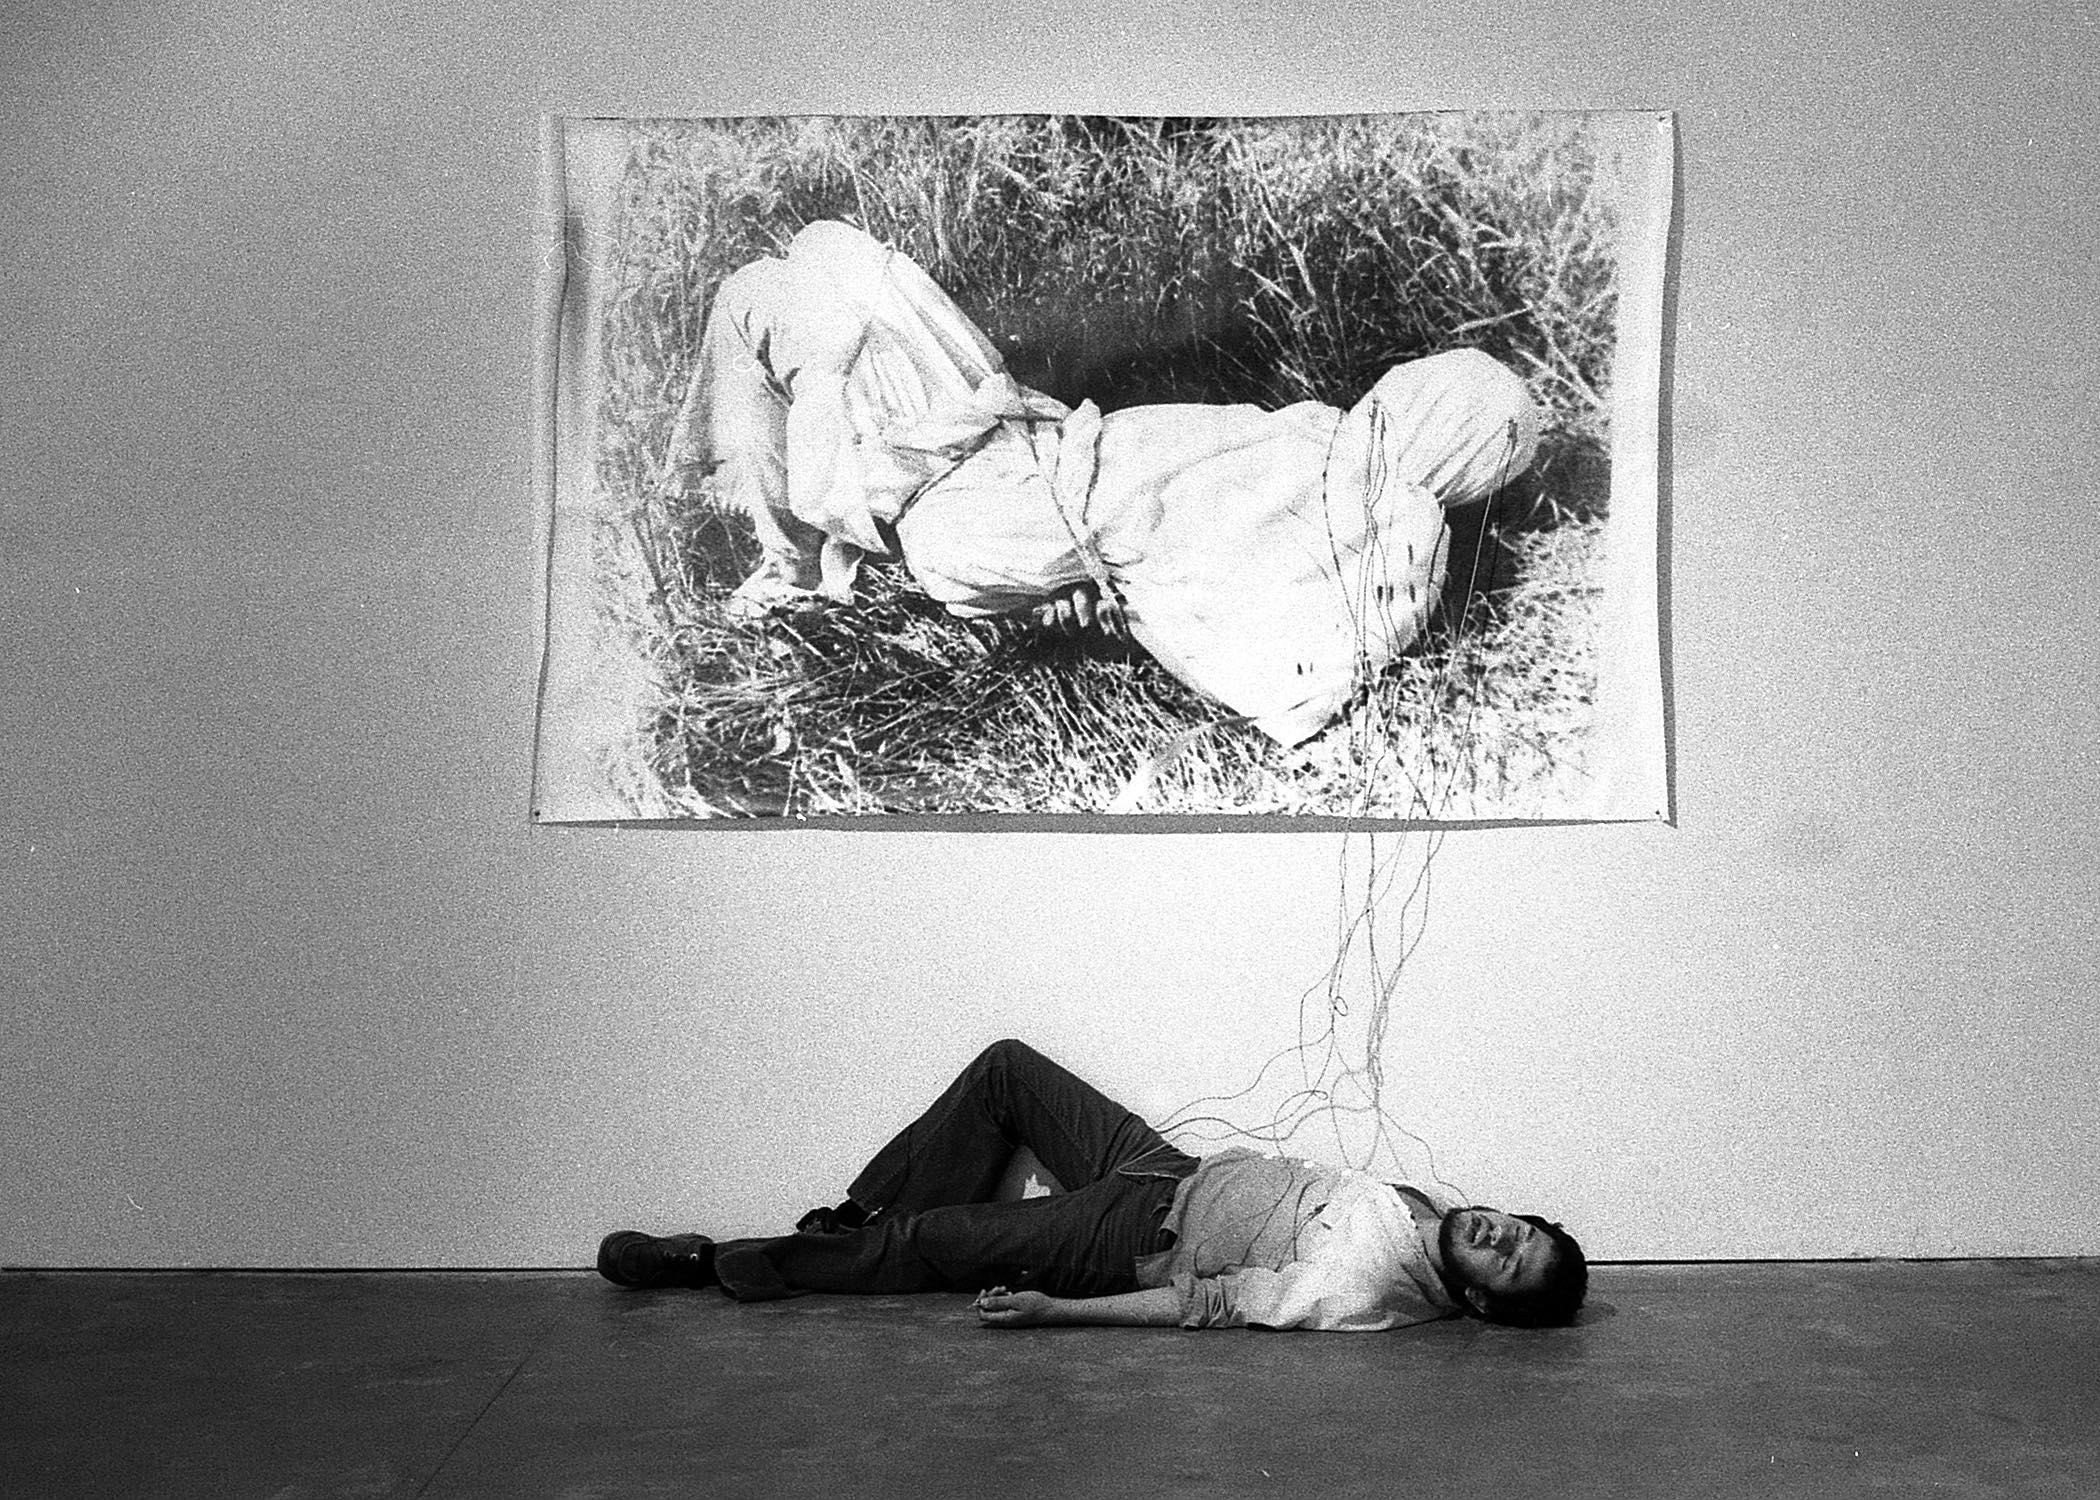 Harry Gamboa Jr., Roberto Gil de Montes, 1978. Gil de Montes shown with his work Tongue Tied in the No Movie exhibition at LACE (Los Angeles Contemporary Exhibitions), May 2–31, 1978. © 1978, Harry Gamboa Jr.